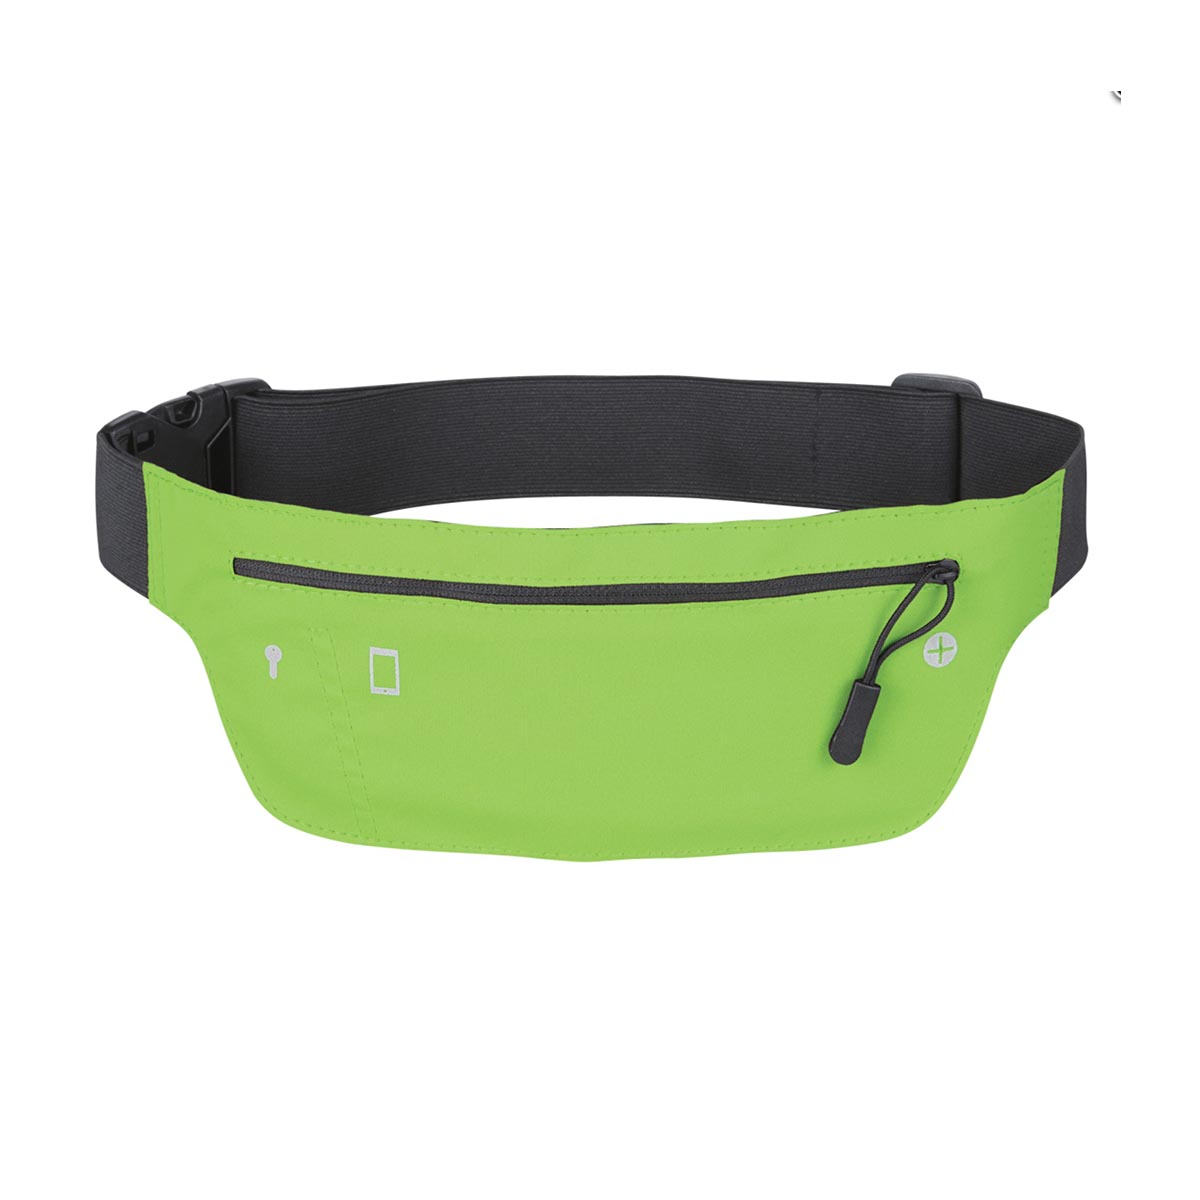 Neon fanny pack green